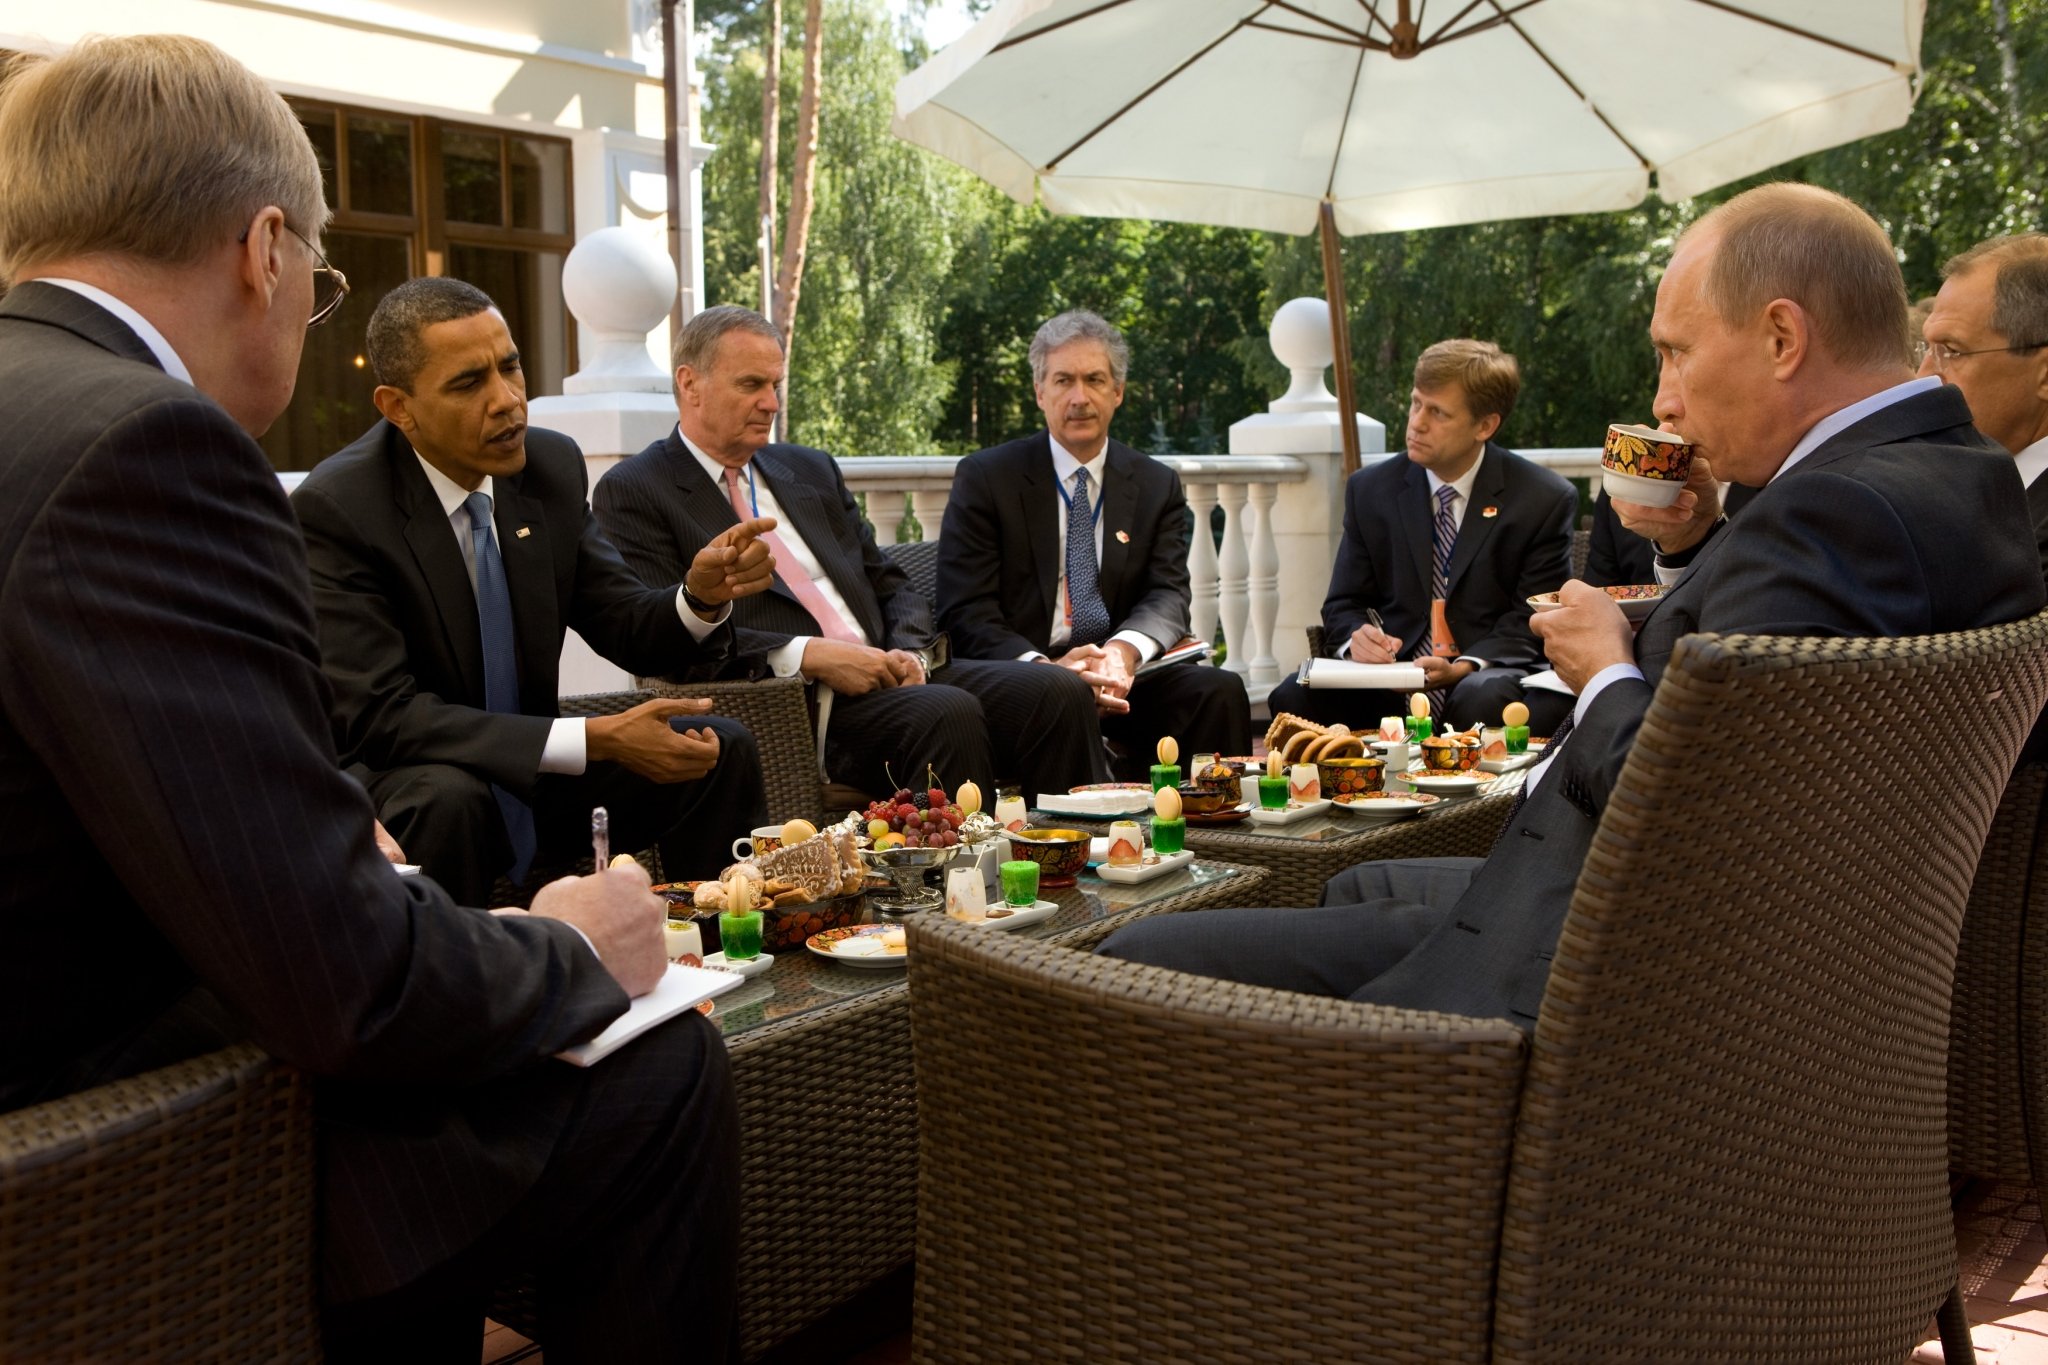 President Barack Obama and members of the American delegation, including National Security Advisor General Jim Jones, Under Secretary for Political Affairs Bill Burns, and NSC Senior Director for Russian Affairs Mike McFaul, meet with Prime Minister Vladimir Putin at his dacha outside Moscow, Russia, July 7, 2009.  (Official White House Photo by Pete Souza)